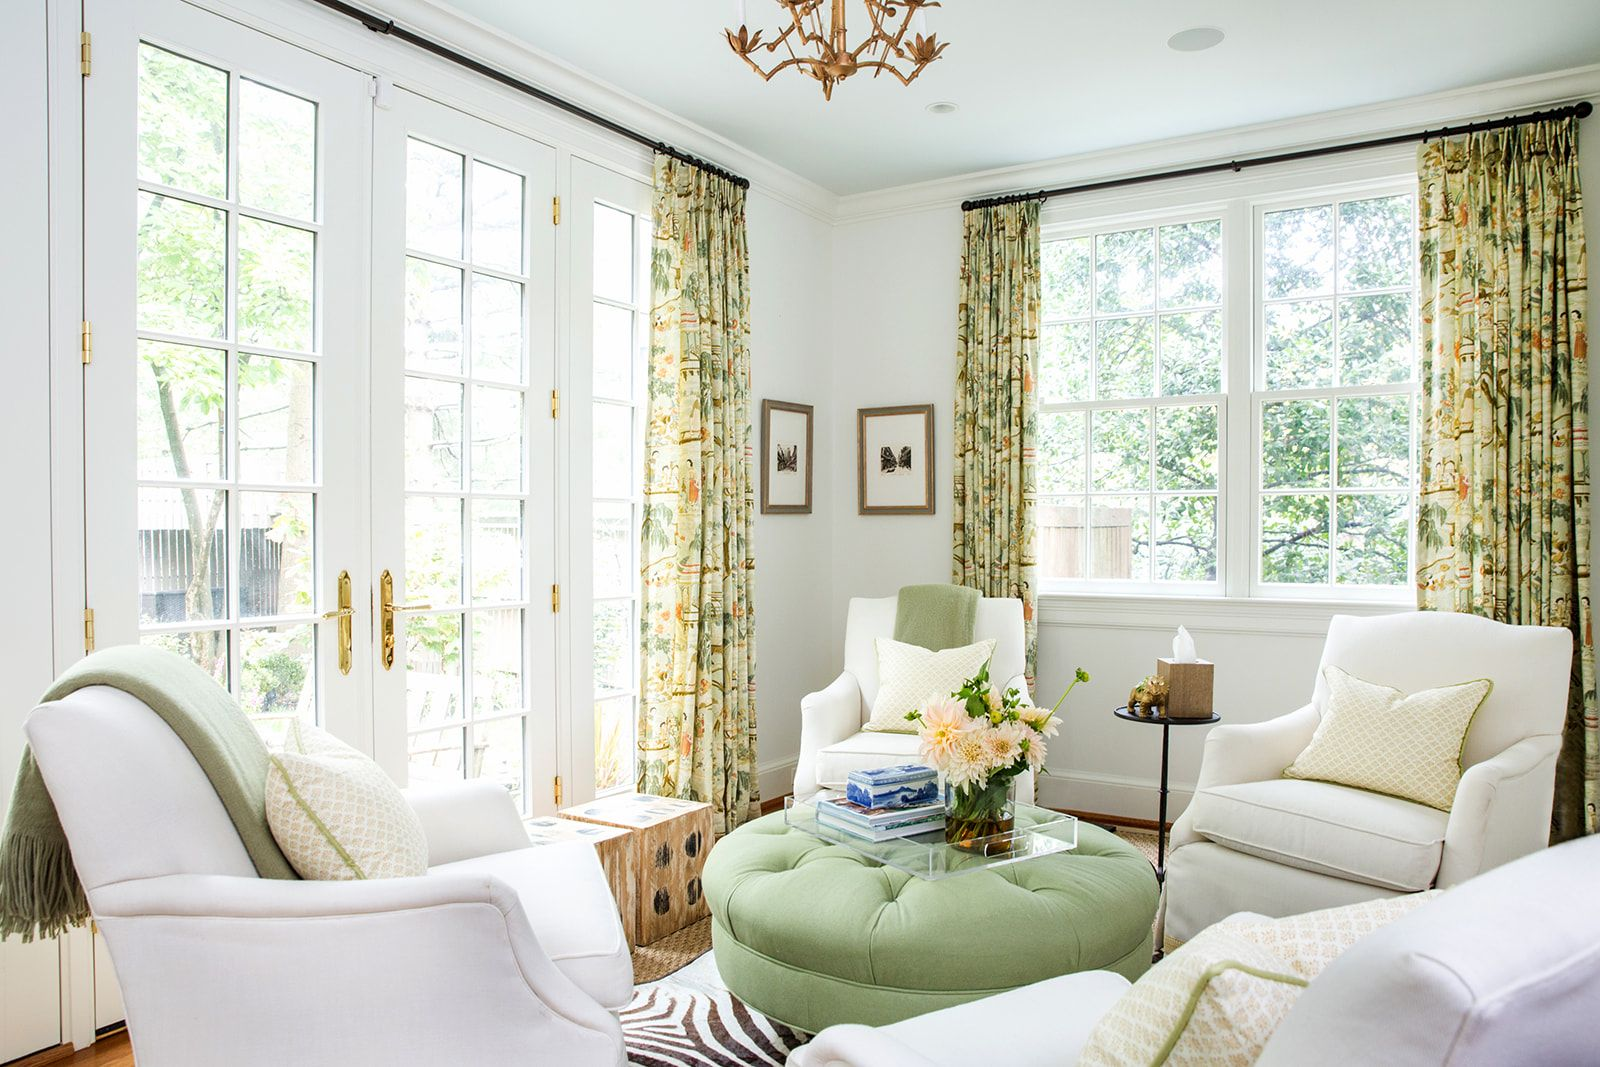 15 Soothing Paint Colors To Create A Calming Space In 2020 Green Family Rooms Family Room Colors Cottage Living Rooms #soothing #colors #for #living #room